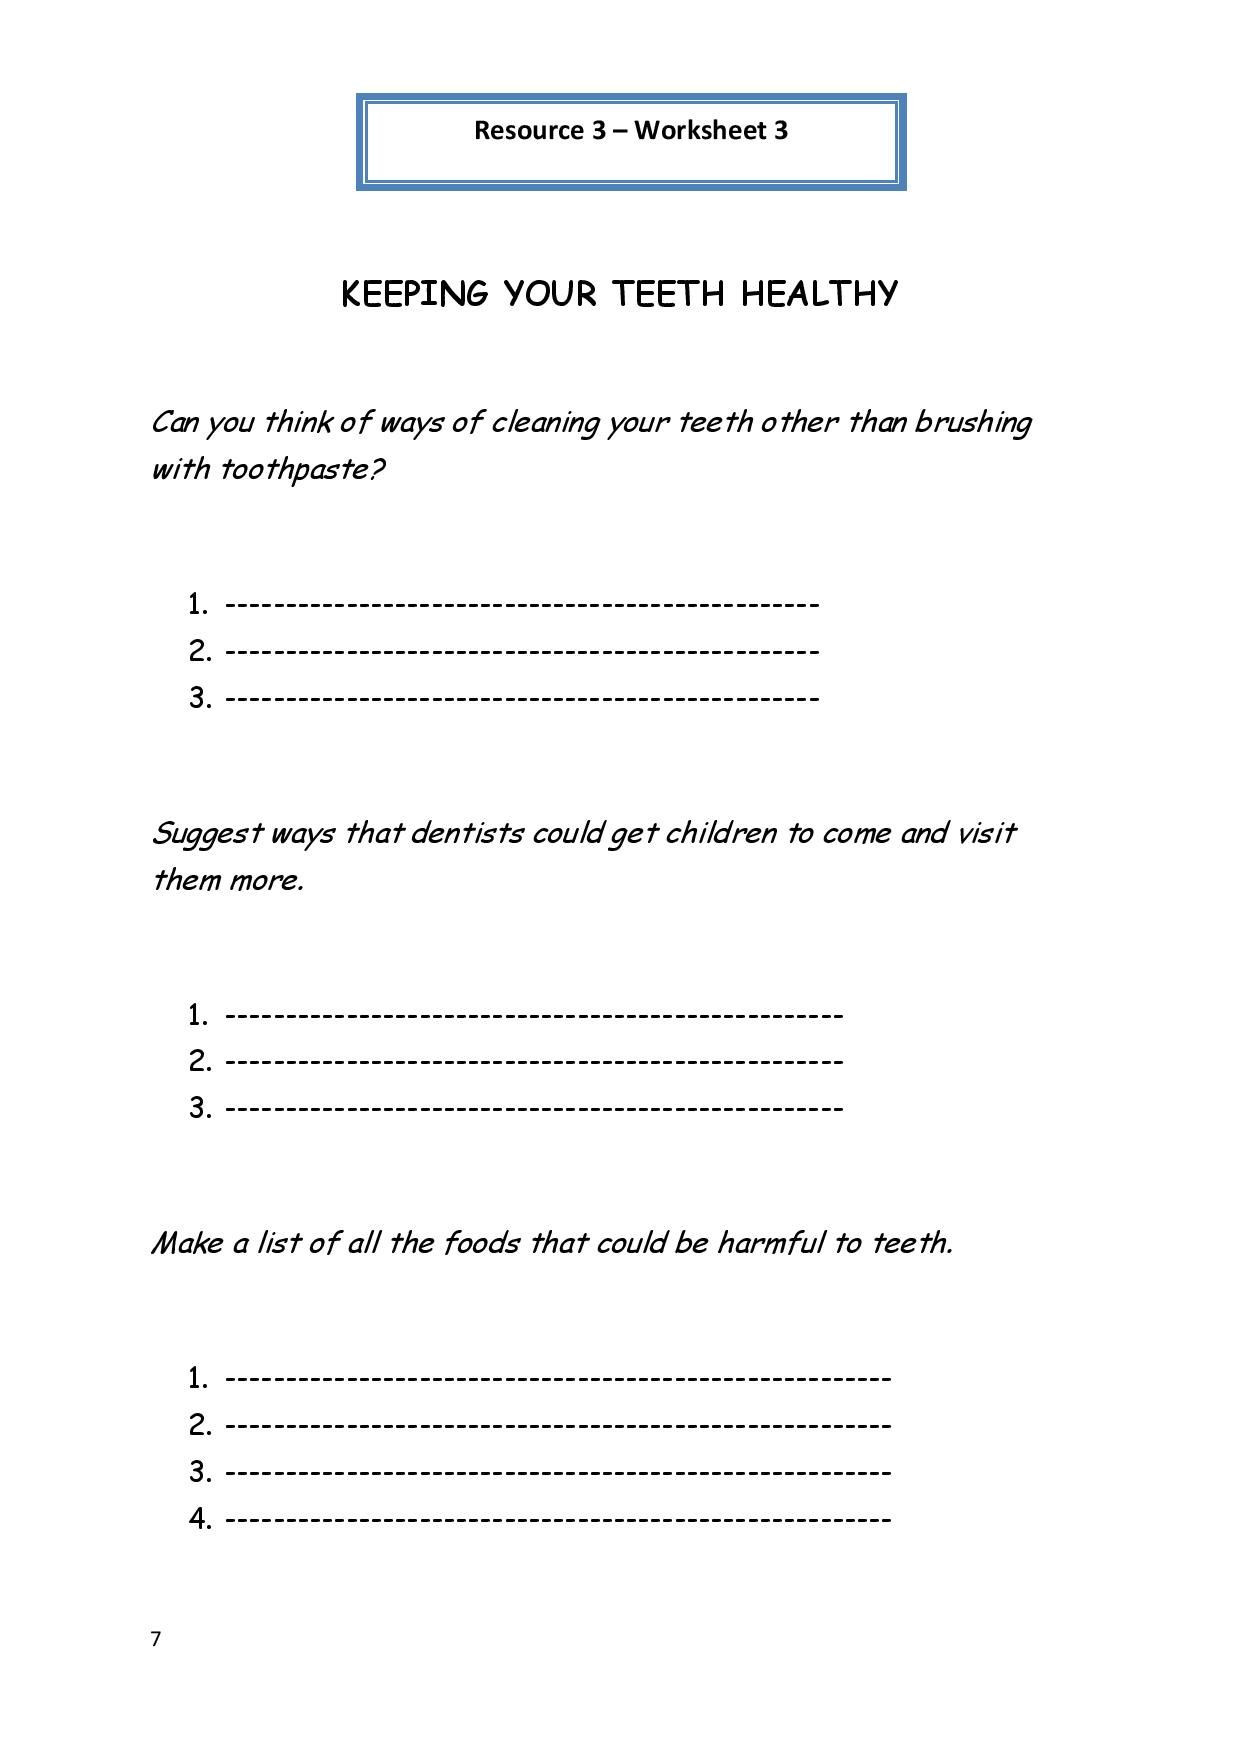 3rd Grade Health Worksheets Free Math Games for Adults Cool Math Worksheets for 3rd